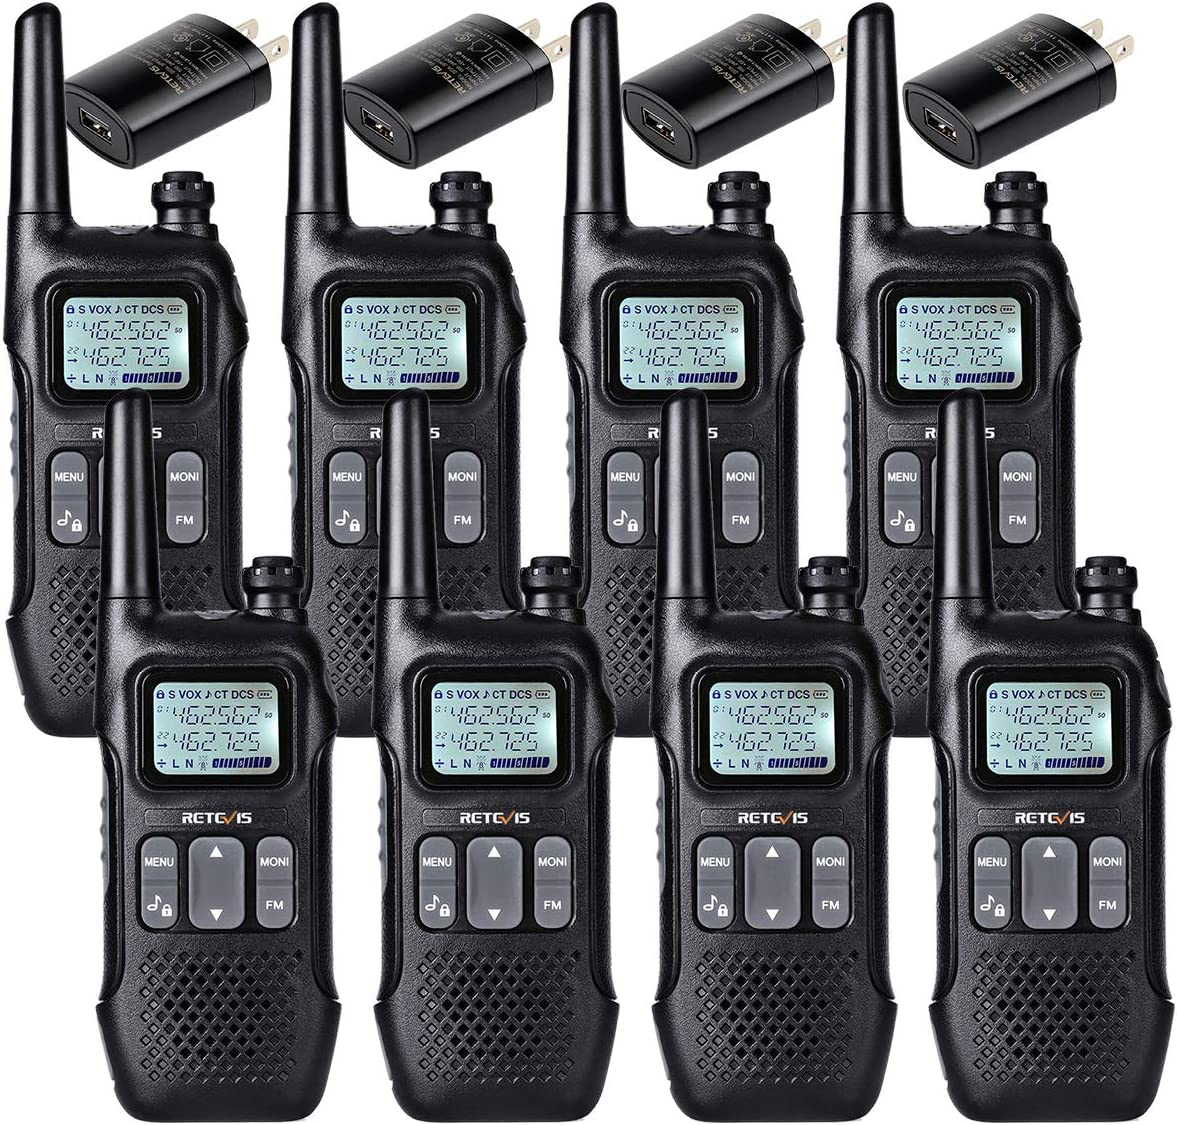 Retevis RT16 2 Way Radio Walkie Talkie for Adult Long Range Dual Watch Emergency Flashlight FM NOAA 22 CH Lock VOX Two Way Radio Rechargeable(8 Pack)